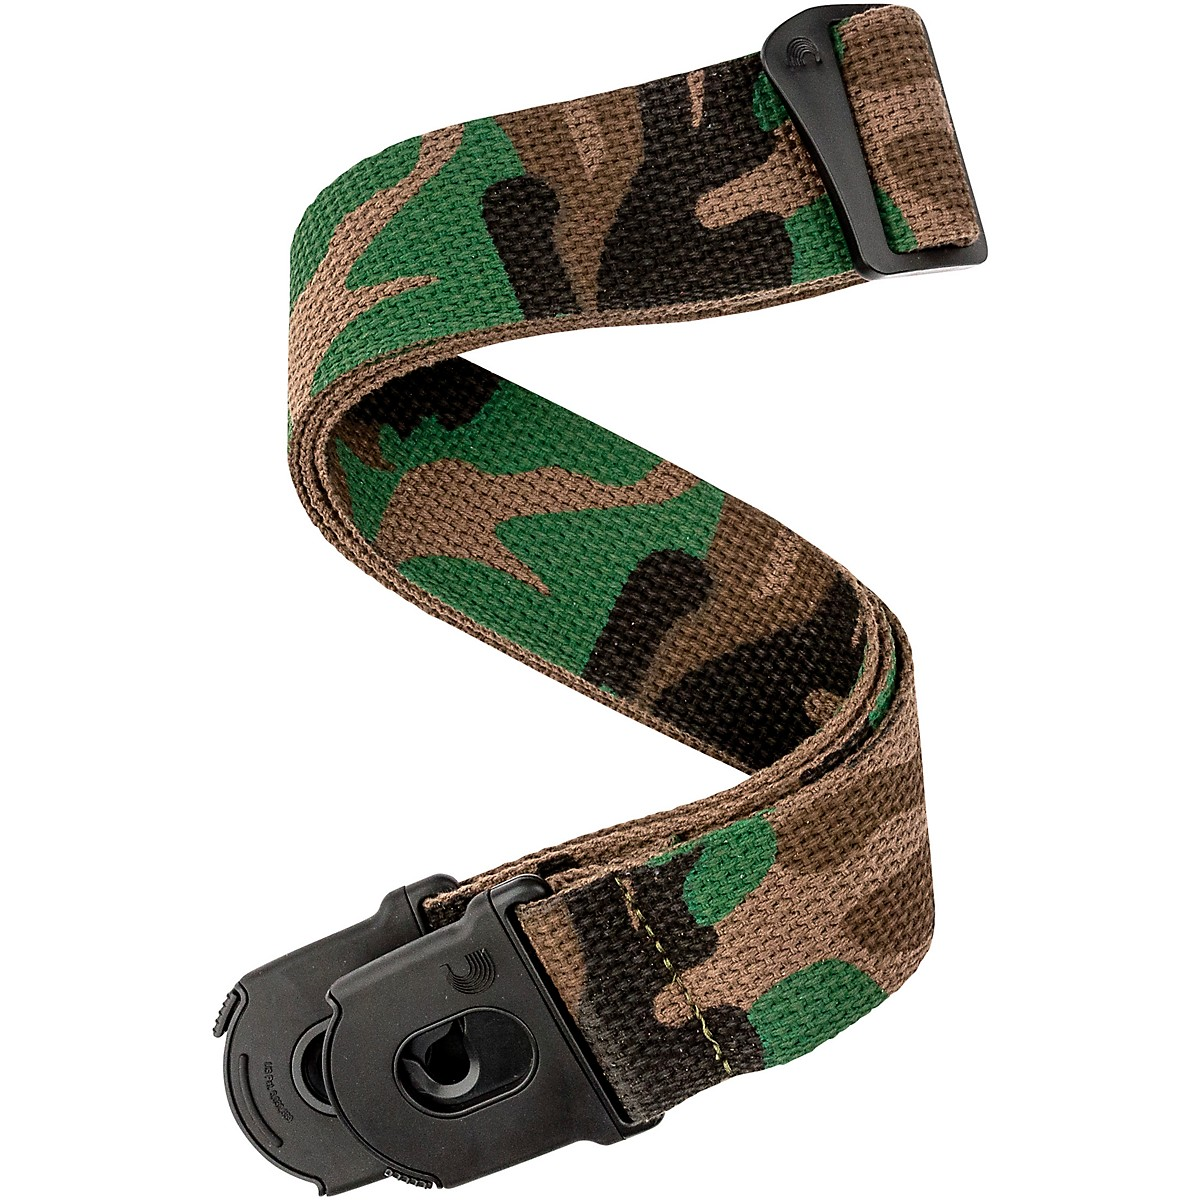 D'Addario Planet Waves 50 mm Nylon Guitar Strap, Planet Lock, Camo